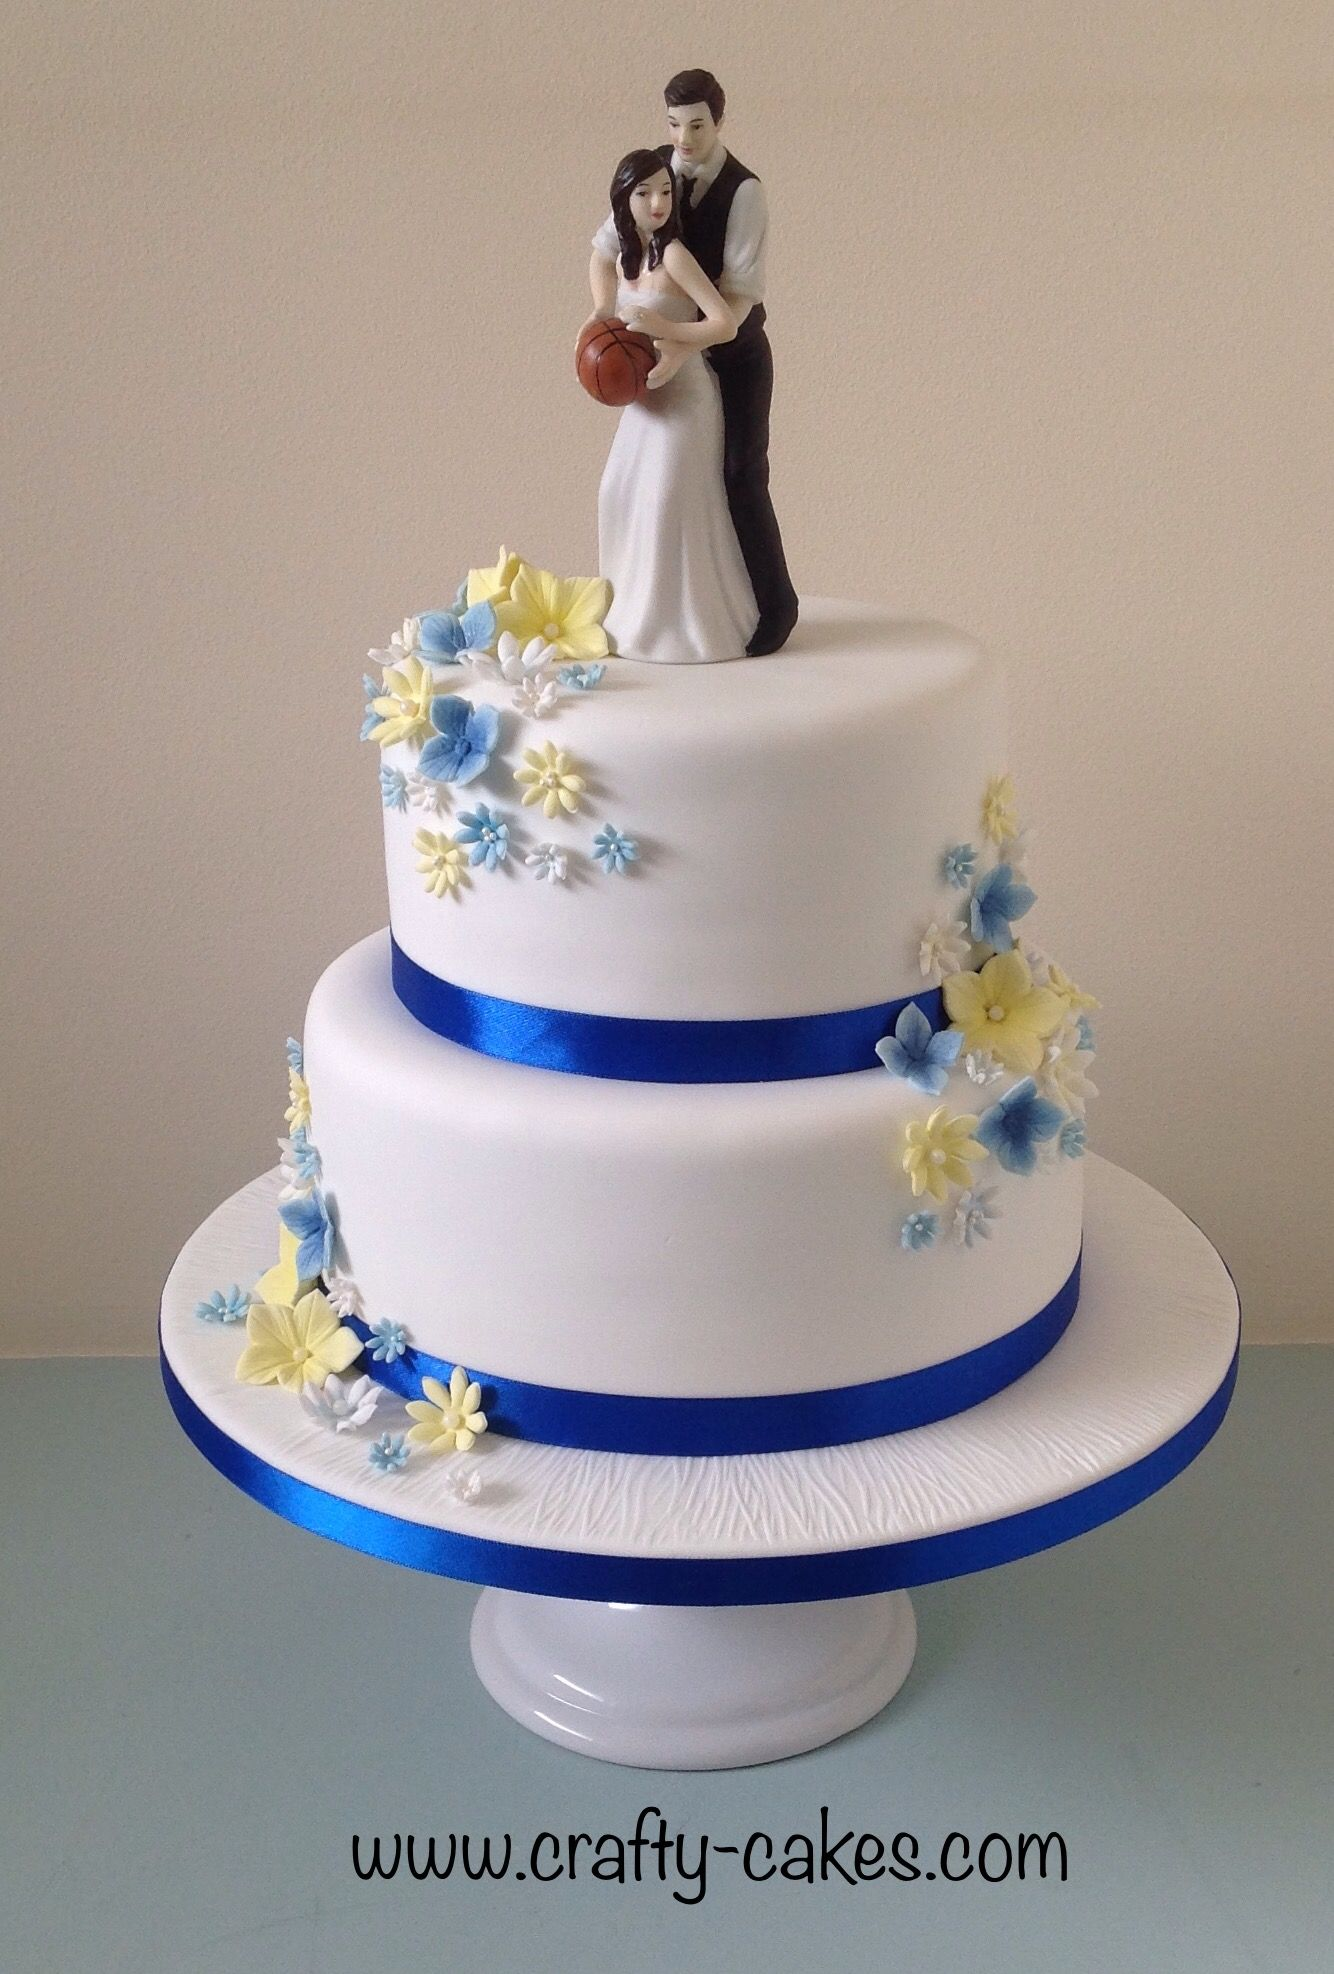 2 Tier Wedding Cake Basketball Topper With Royal Blue